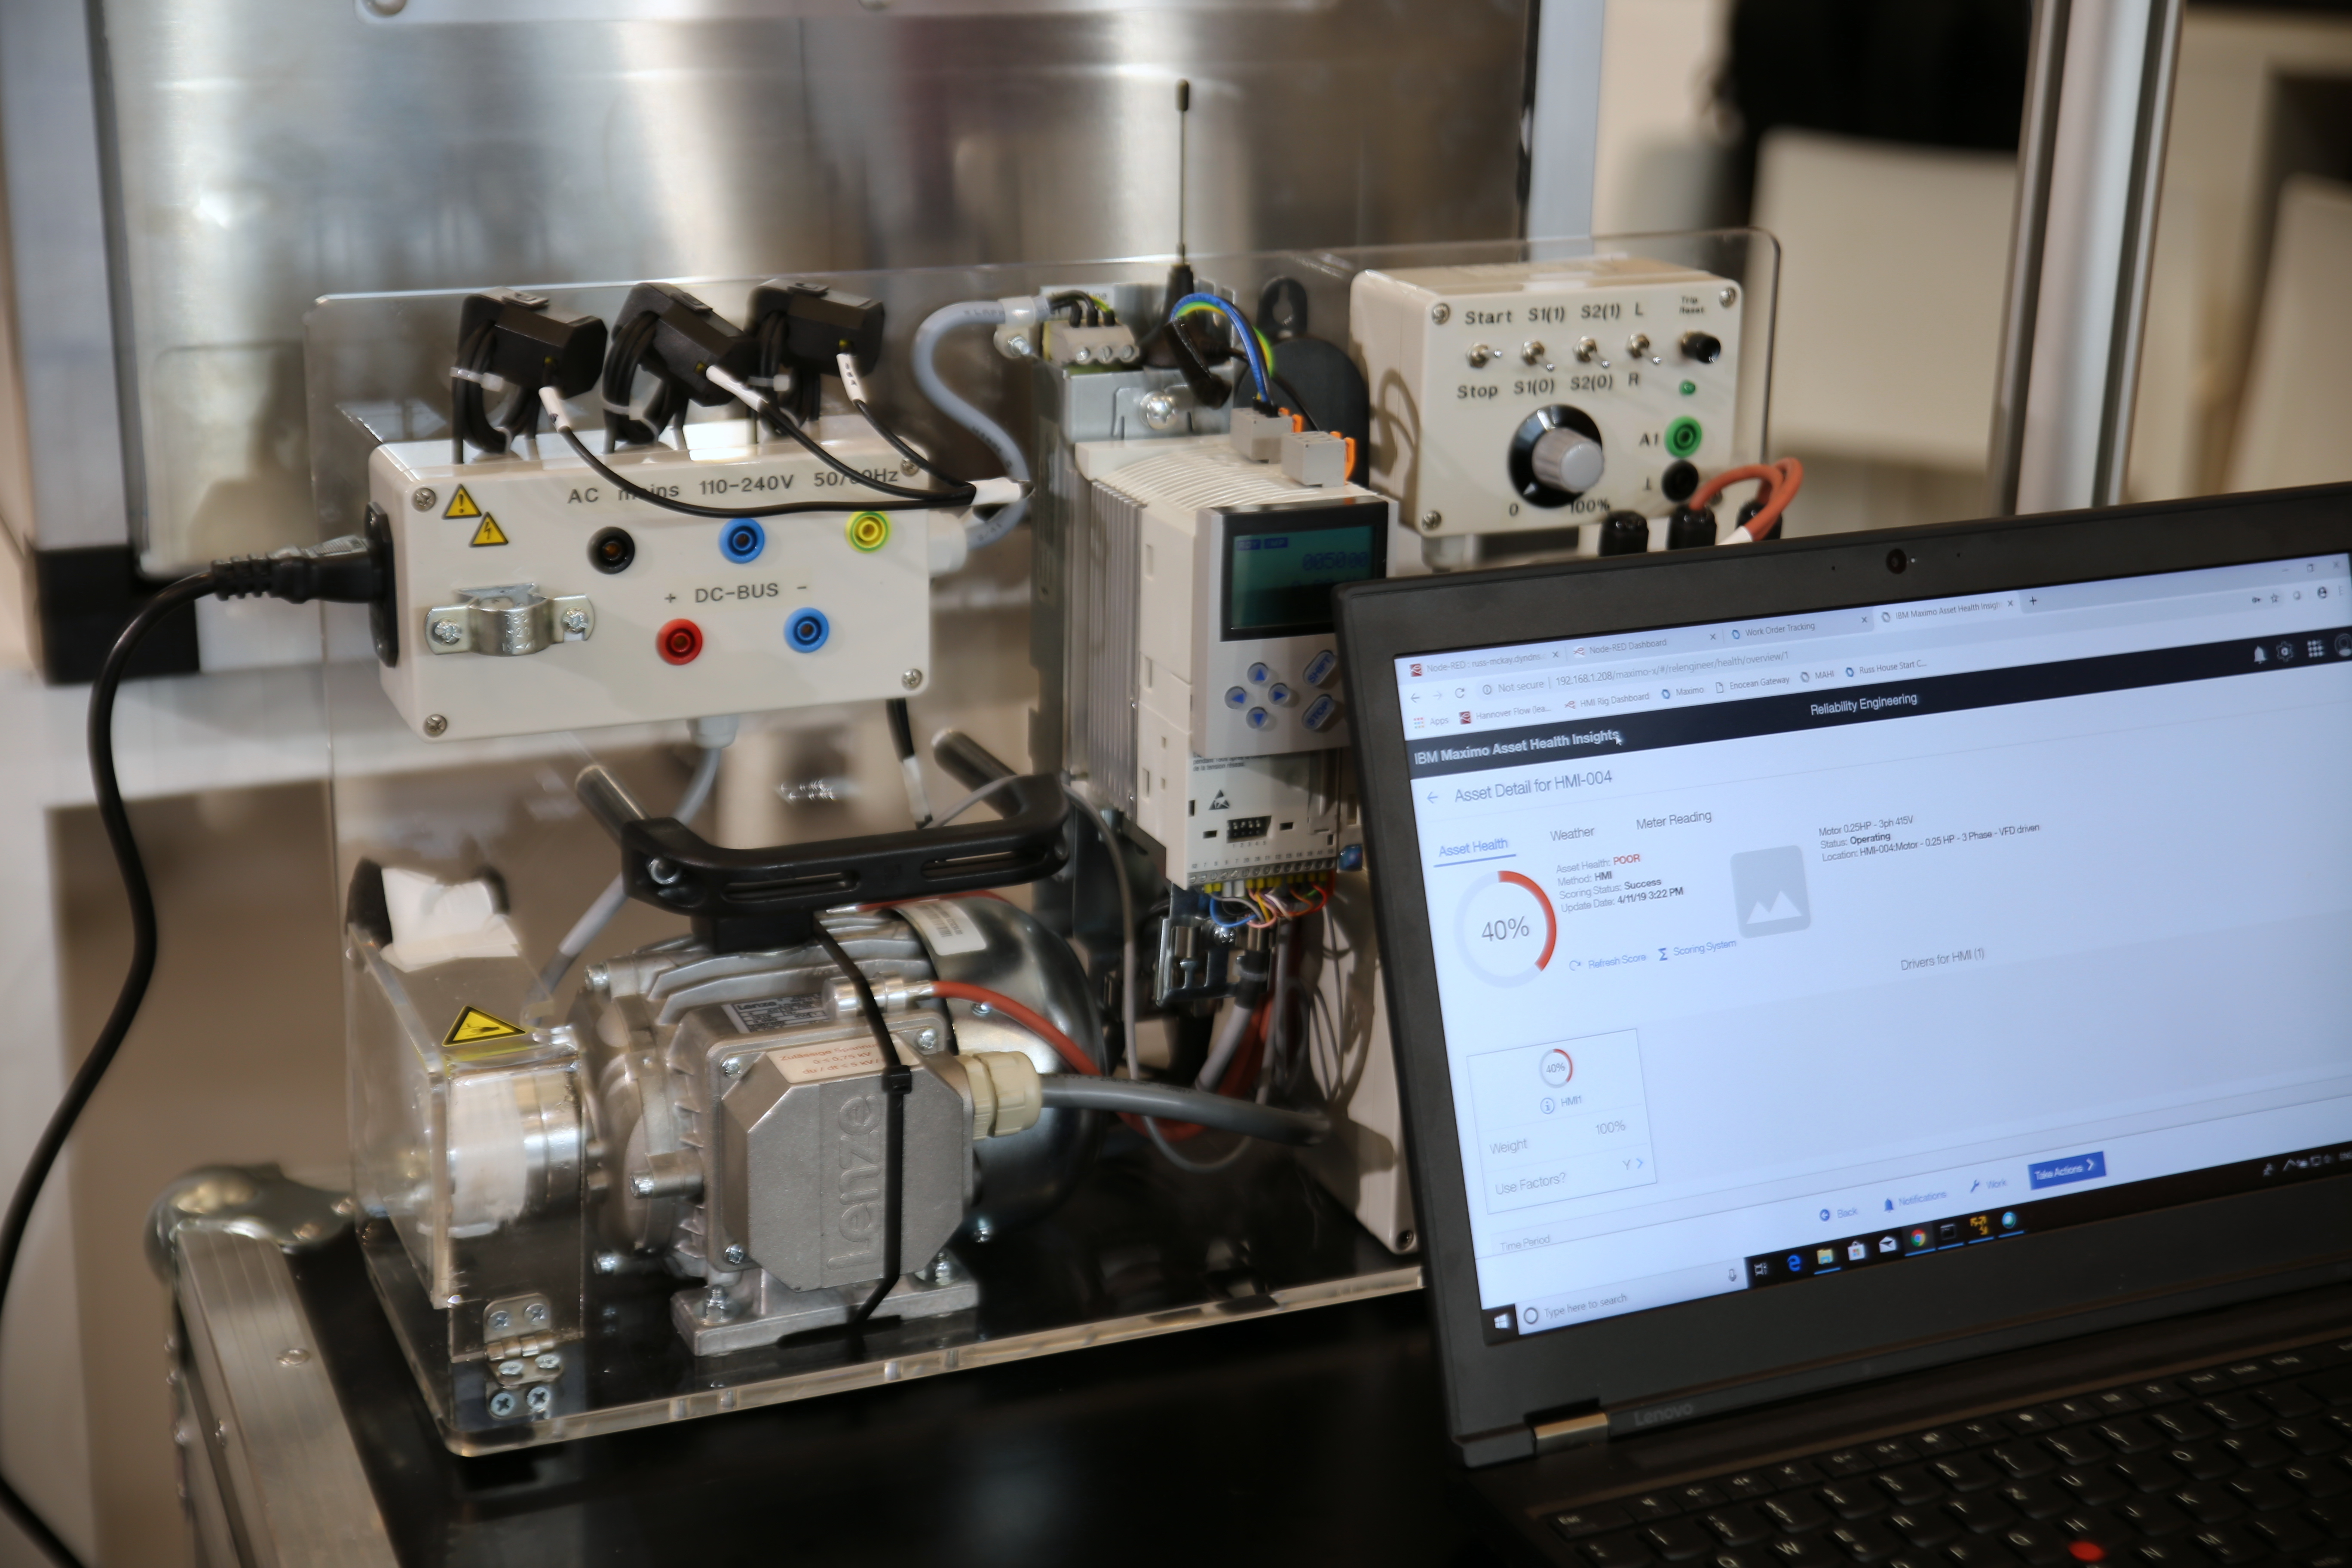 Industrial Internet of Things solutions presented at 2019 SIdO (credits: Pierre Metivier / Flickr Creative Commons Attribution-NonCommercial 2.0 Generic (CC BY-NC 2.0))